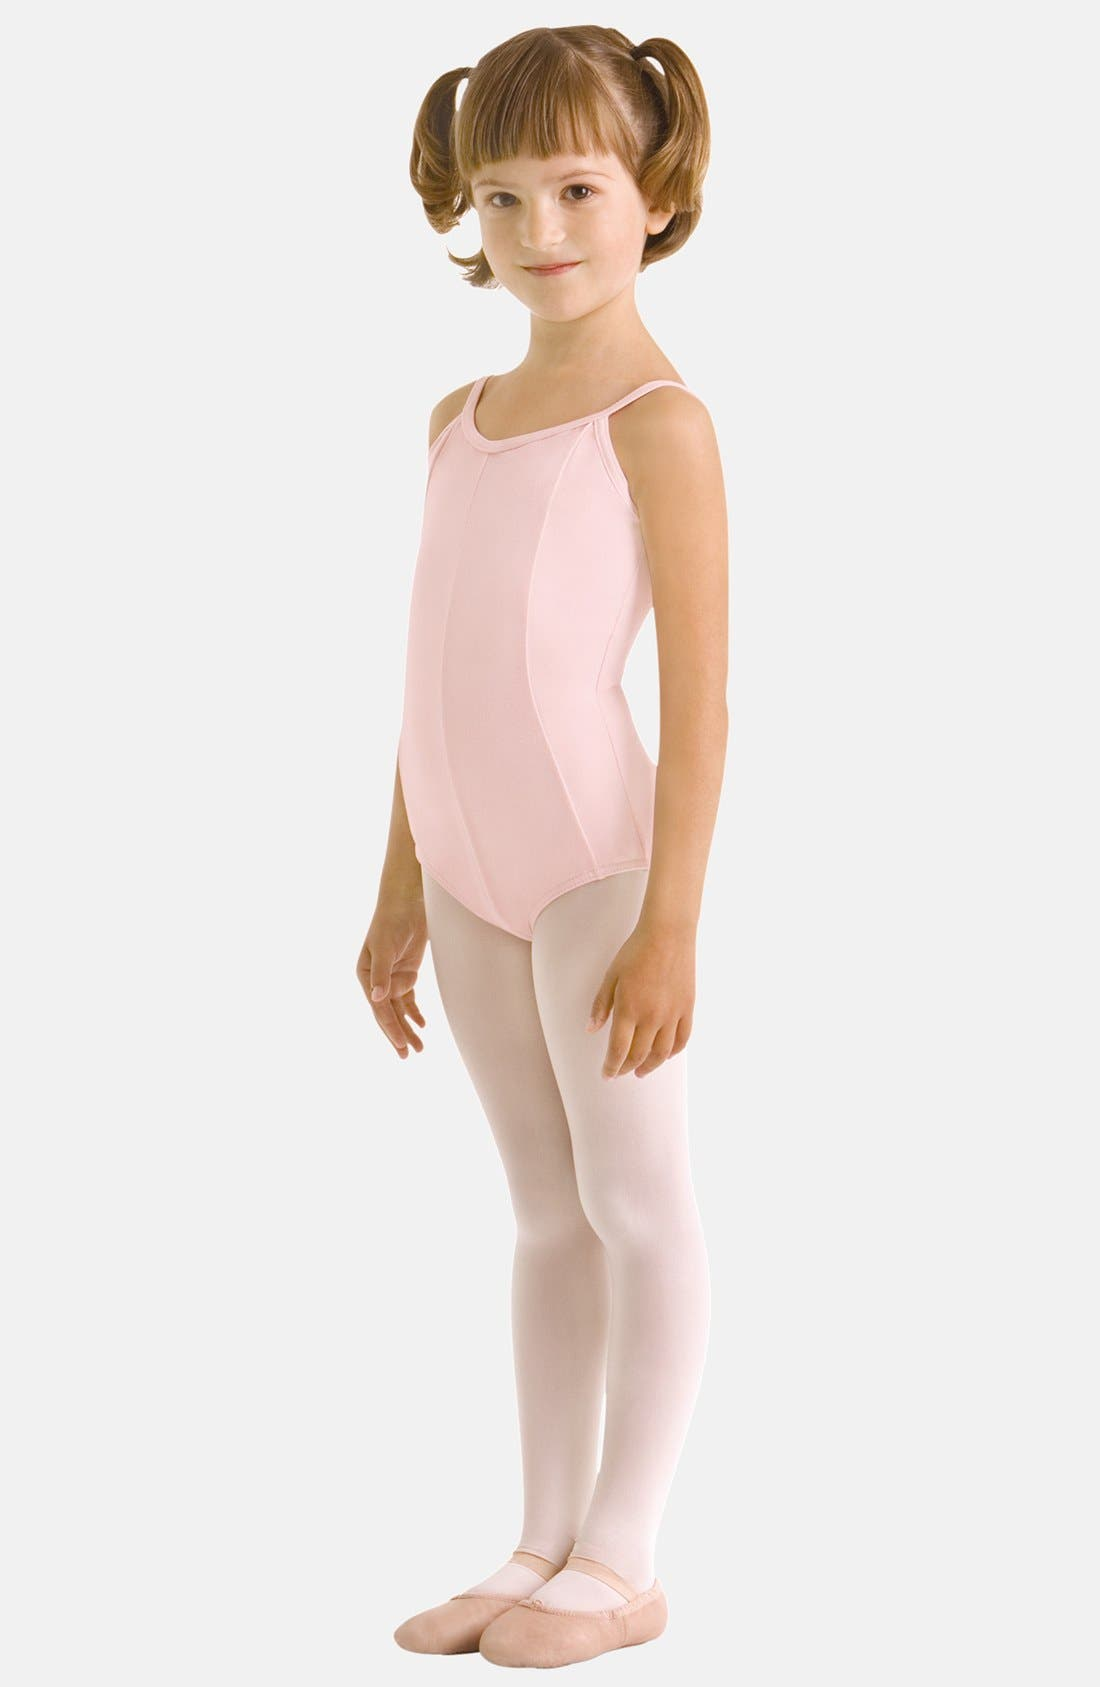 Alternate Image 1 Selected - Bloch 'Mirella - Seamed' Camisole Leotard (Big Girls)